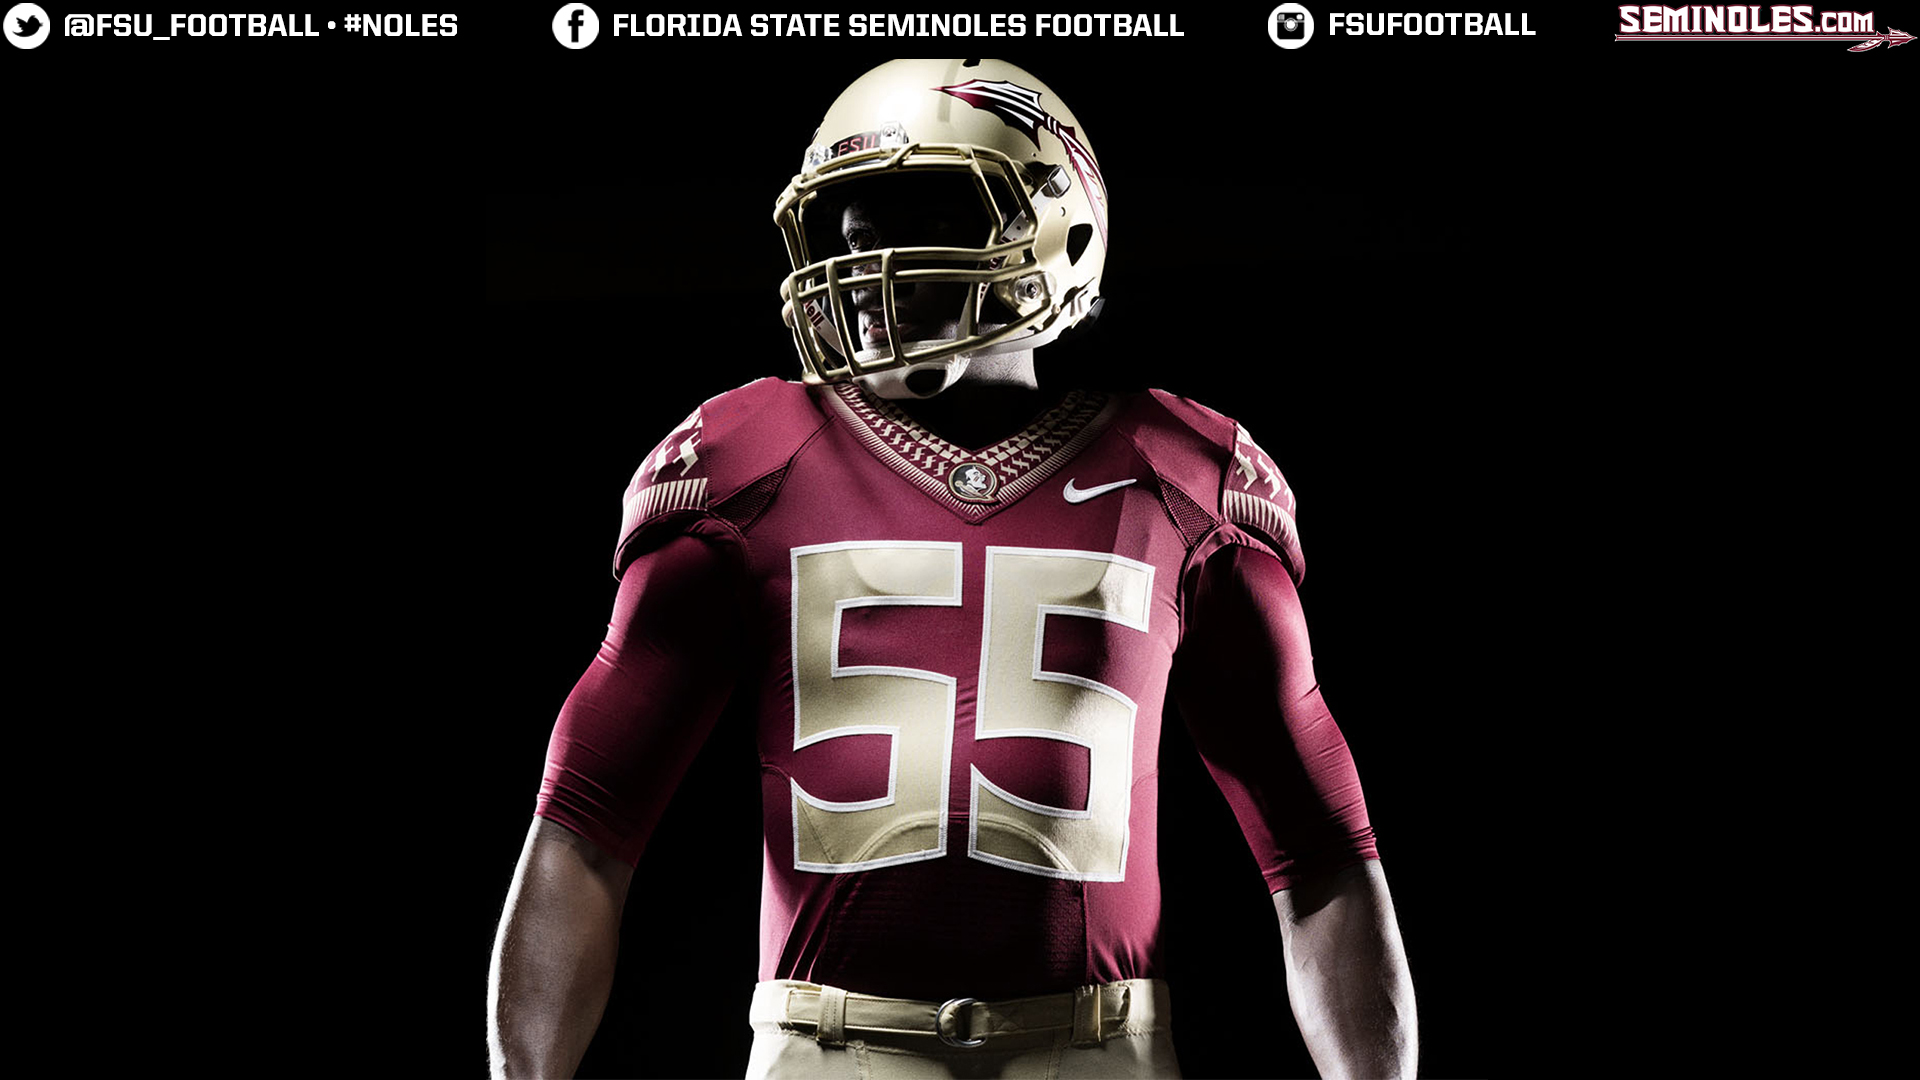 Florida State University Browser Themes Wallpapers 1920x1080